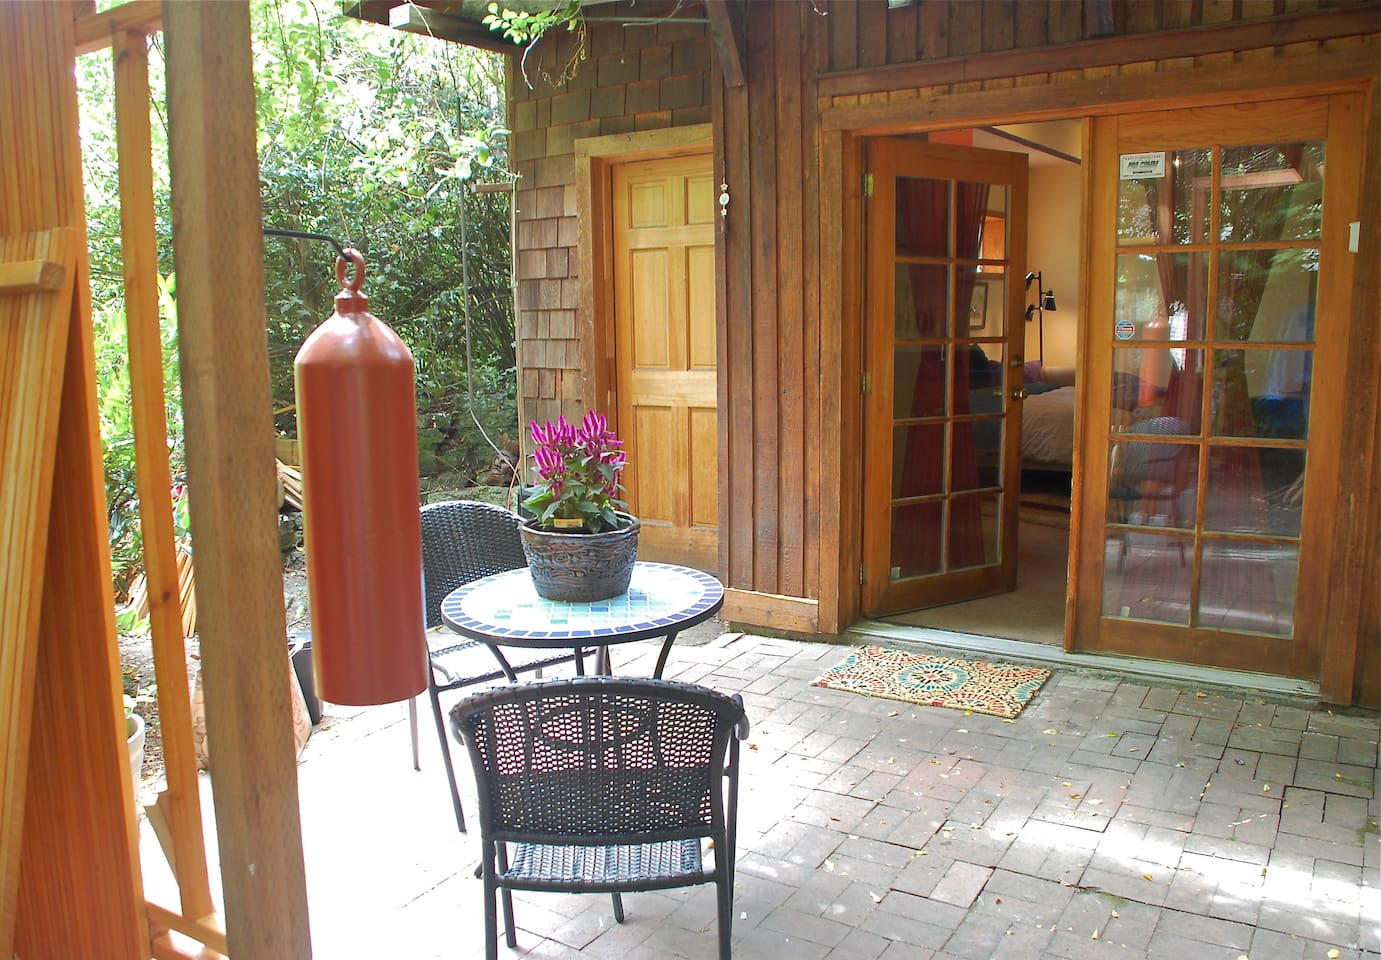 entrance to space thru double french doors & 200 sq ft brick patio. zen bell, bistro table under wisteria arbor